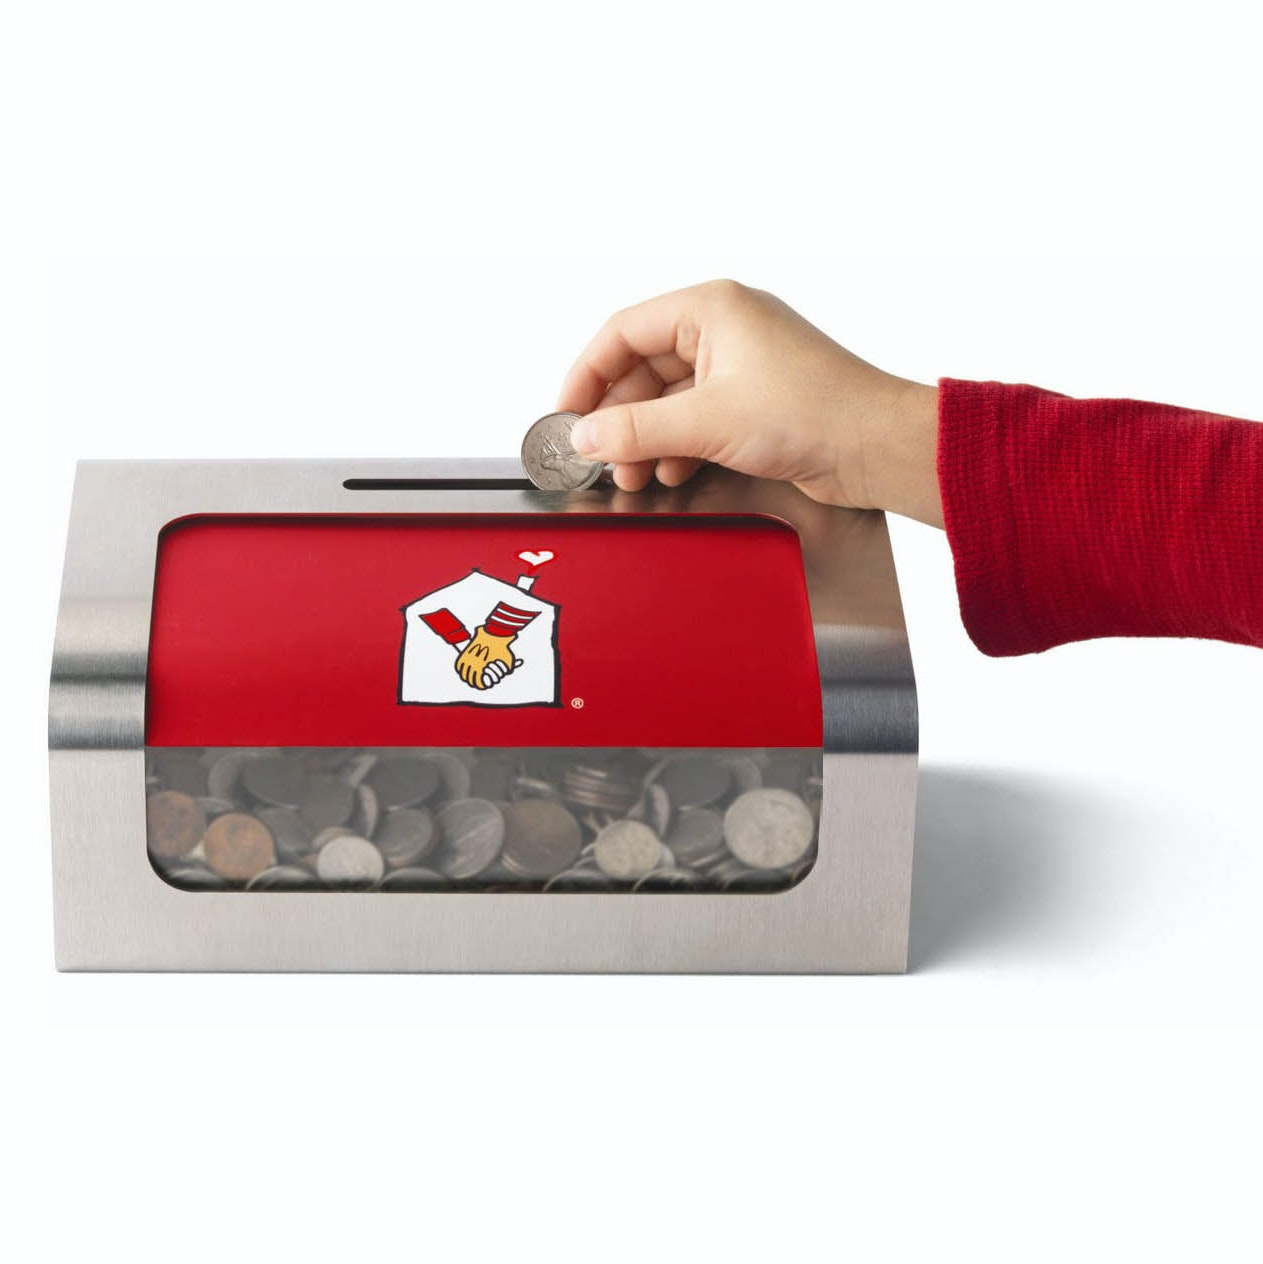 RMHC McDonald's Coin box